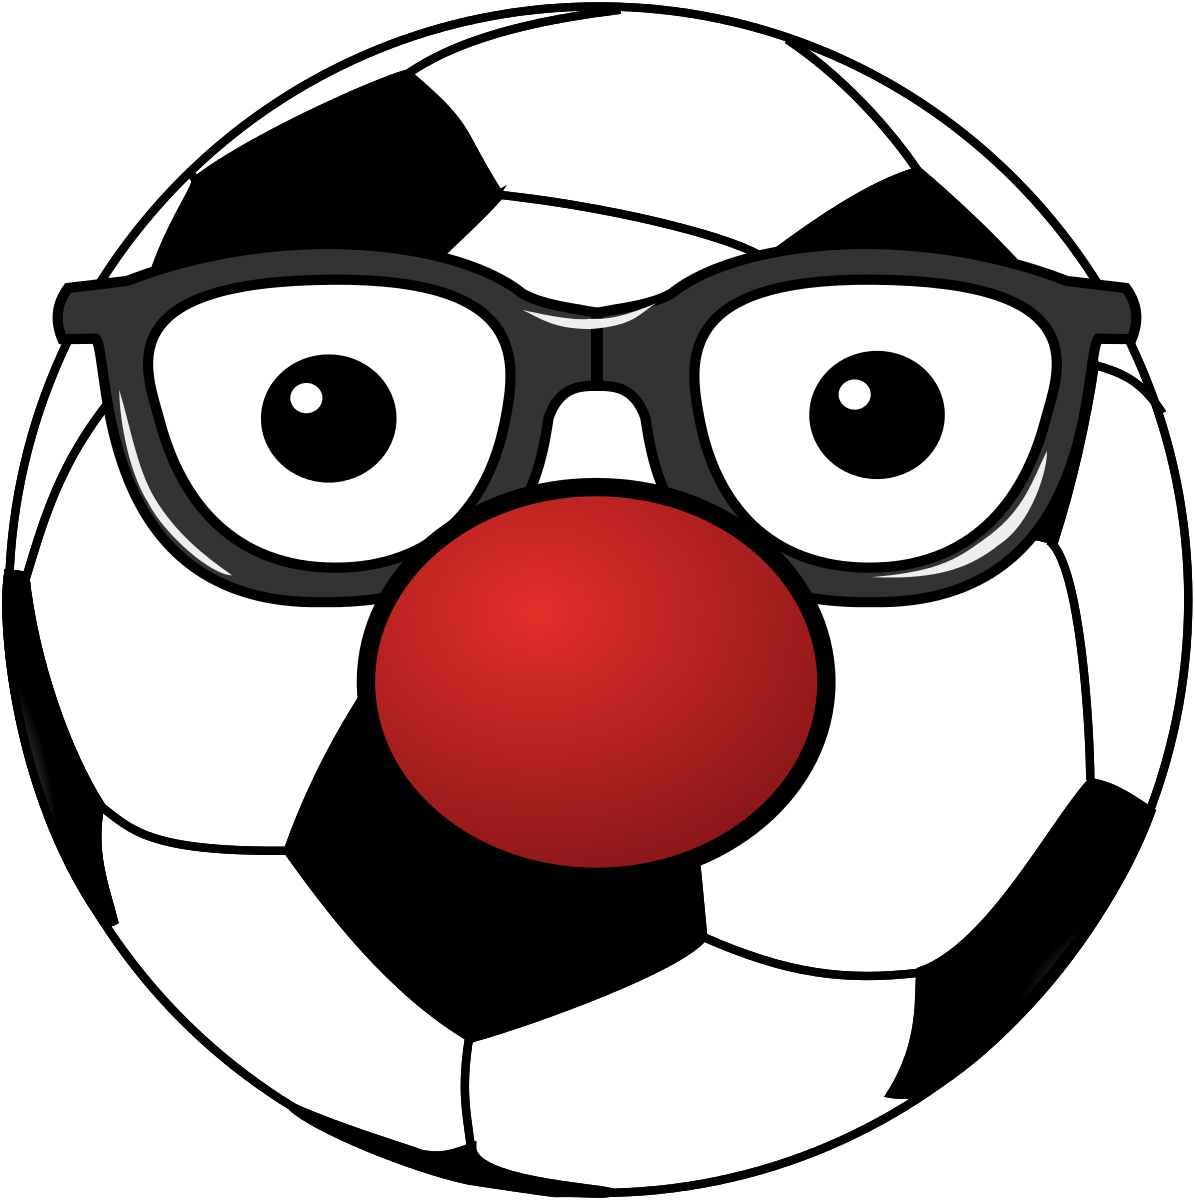 1195x1200 Printable Picture Of A Soccer Ball Clipart